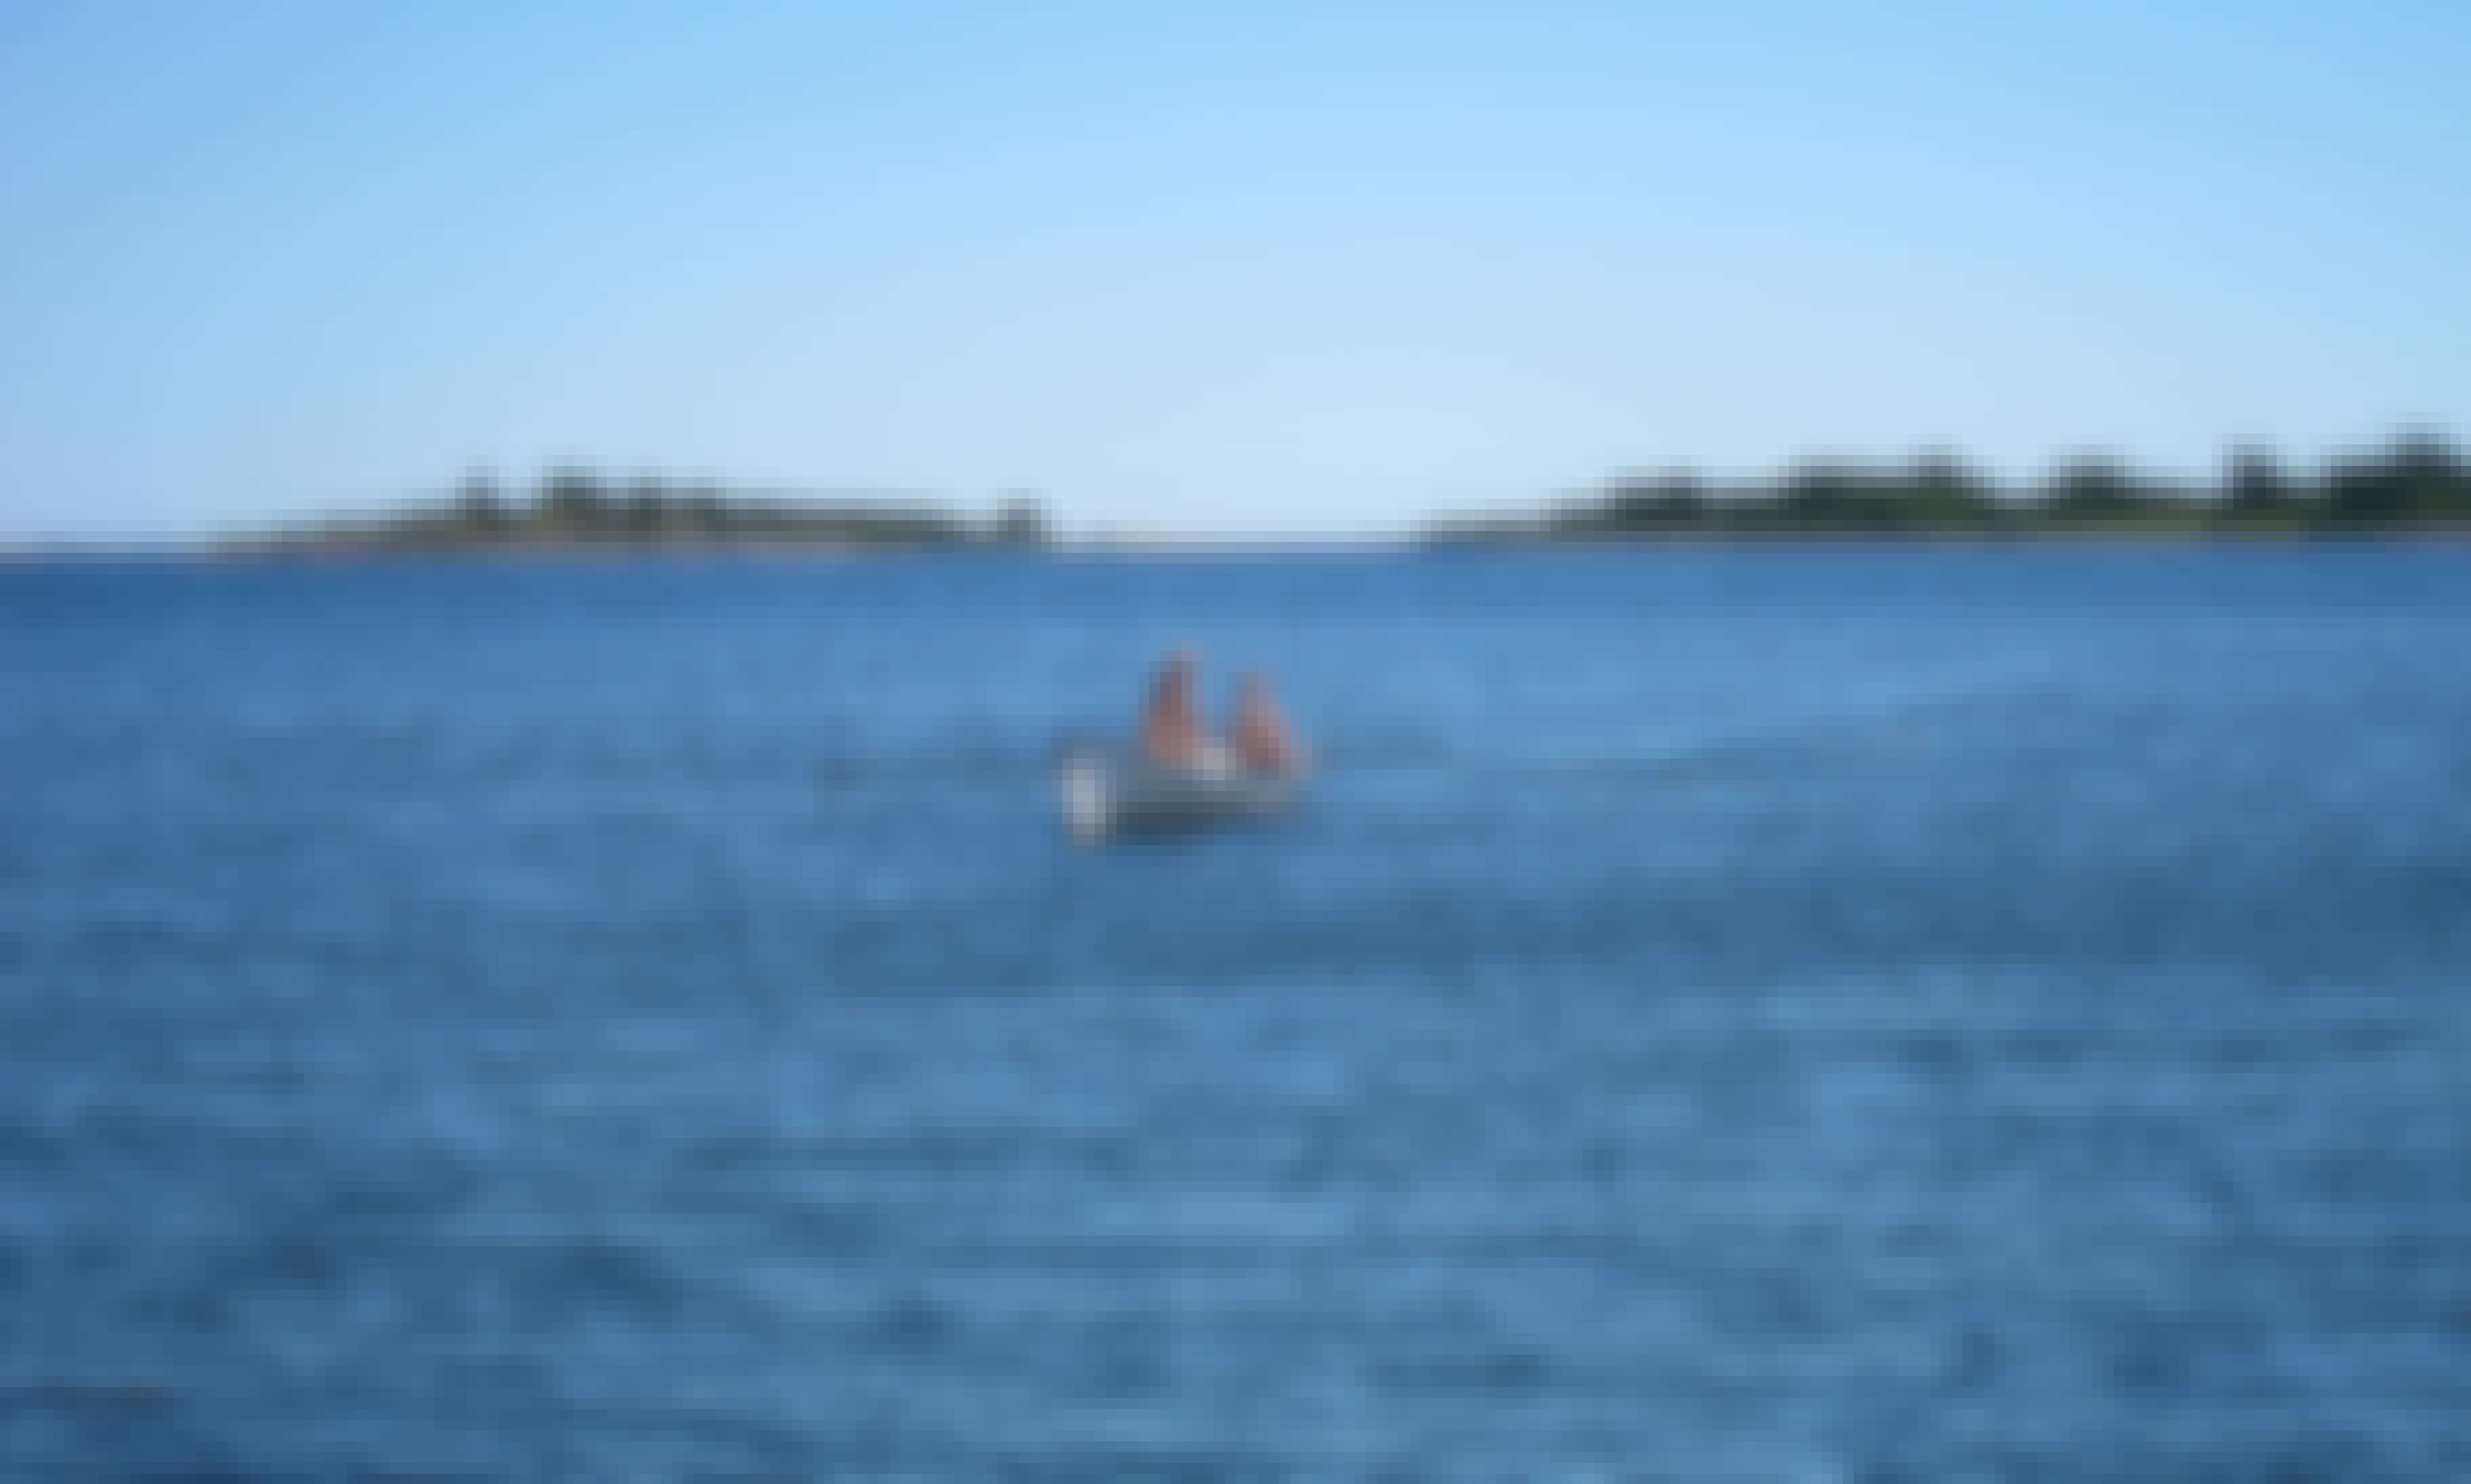 Rowing boat/ skif for rent in Southern Sweden, Agunnaryd lake